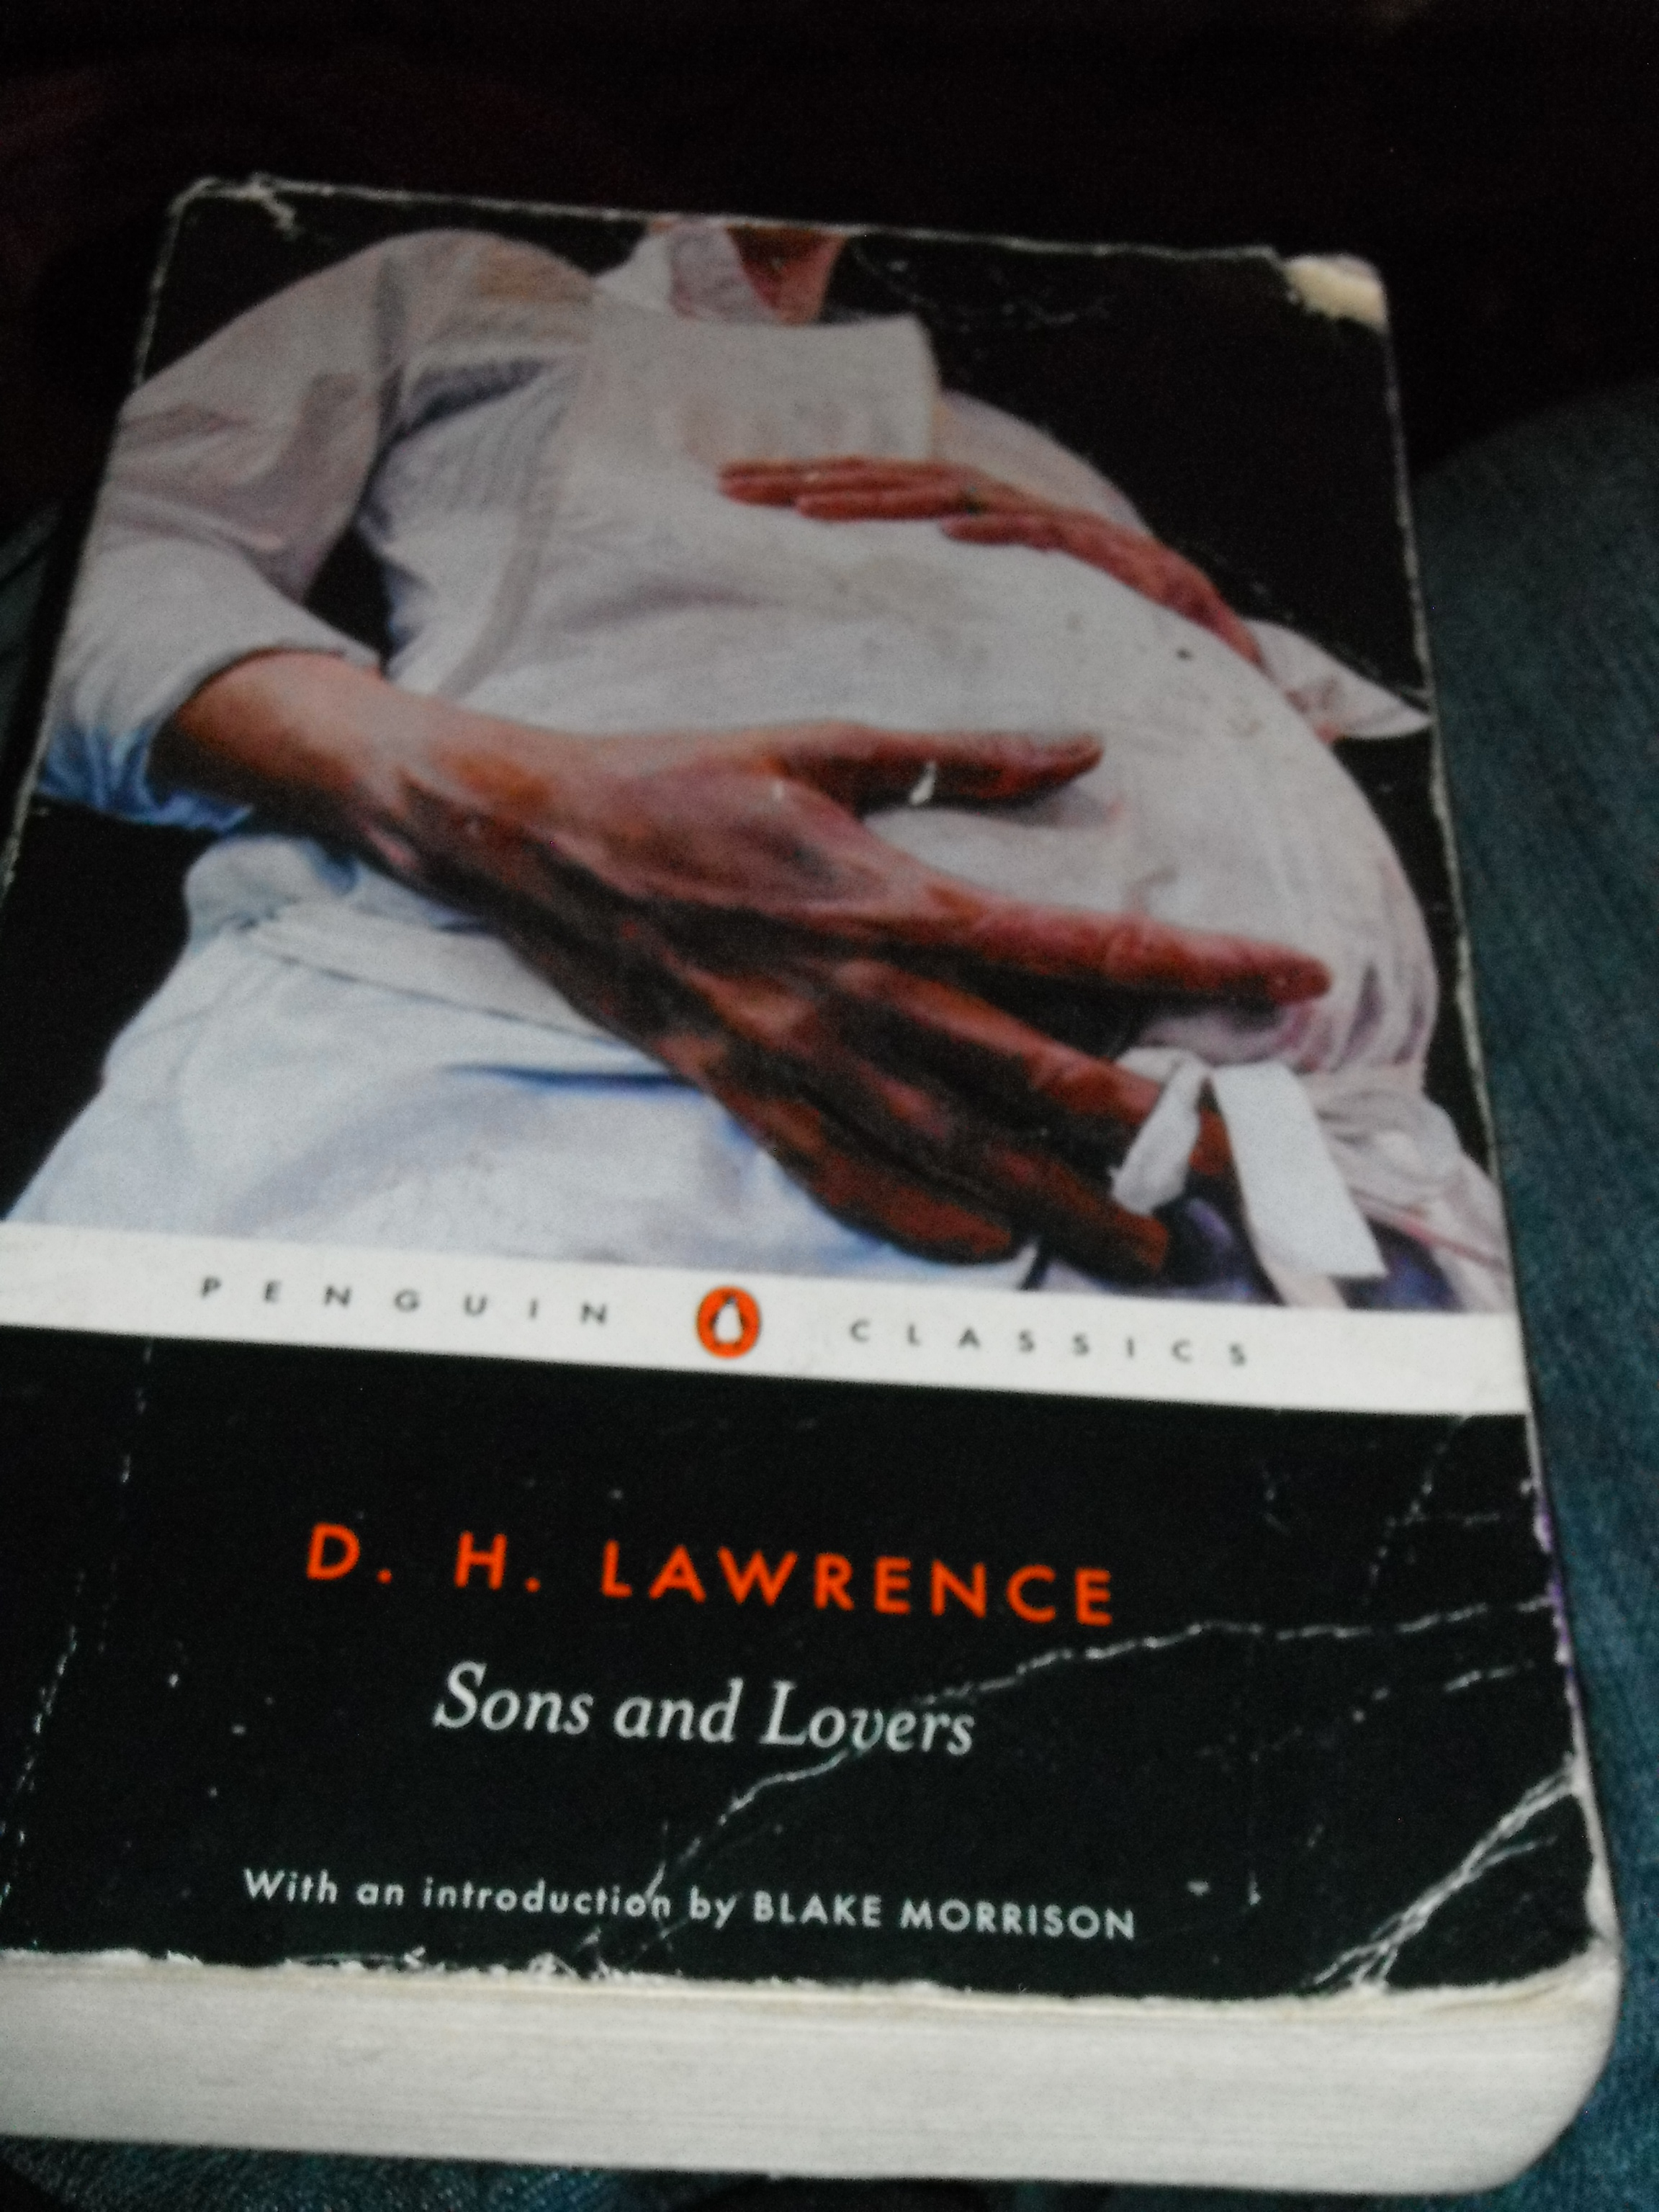 Photo taken by me – The book's cover.